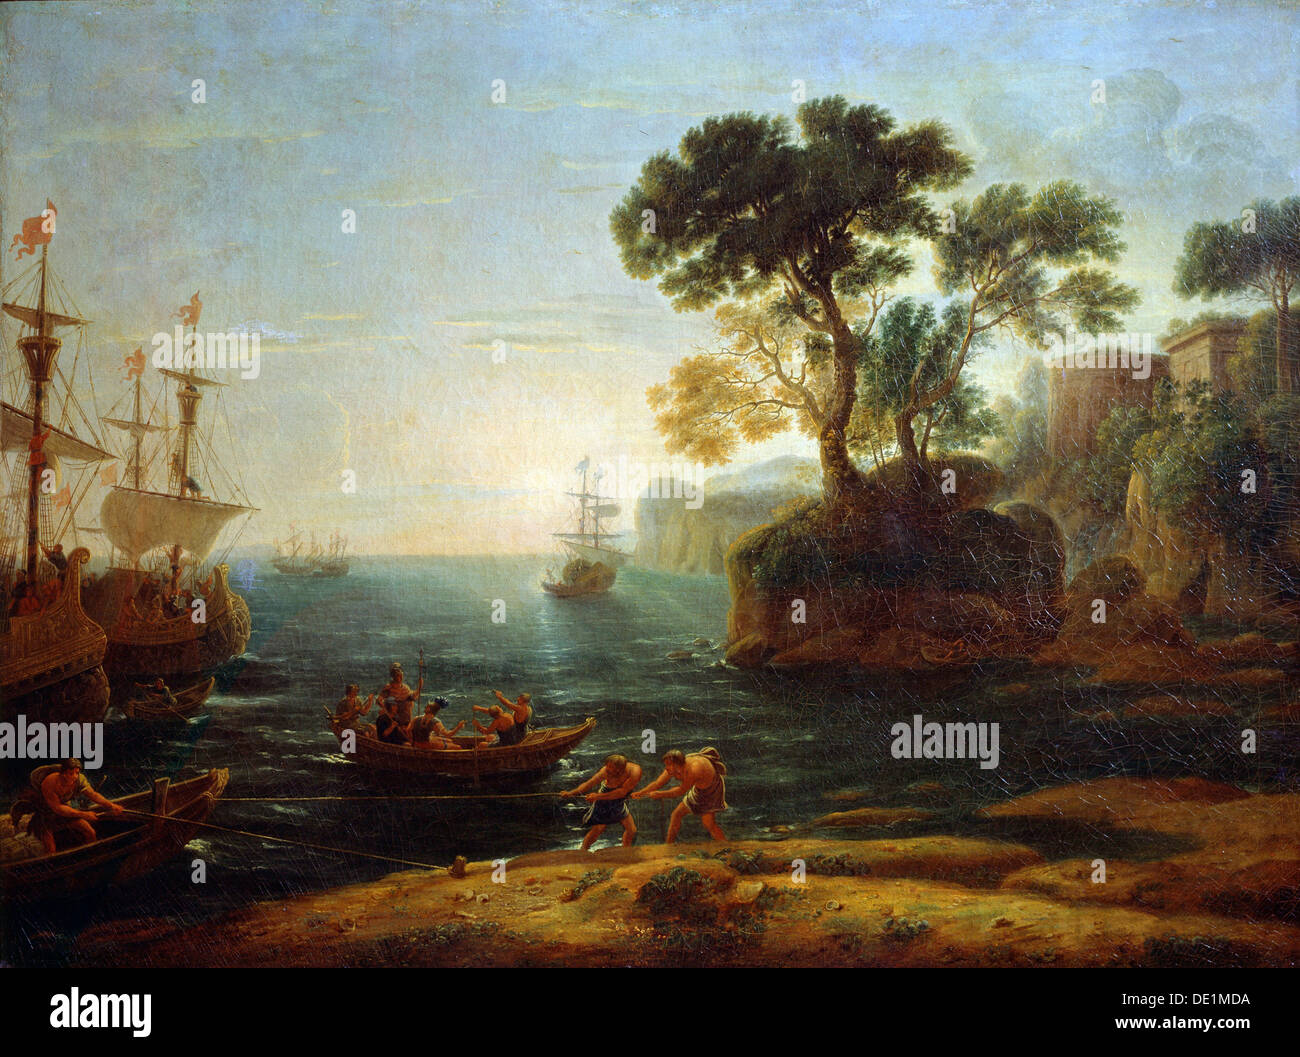 'Arrival of Aeneas in Italy. Morning of the Roman Empire', c.1620-1680. Artist: Claude Lorrain - Stock Image